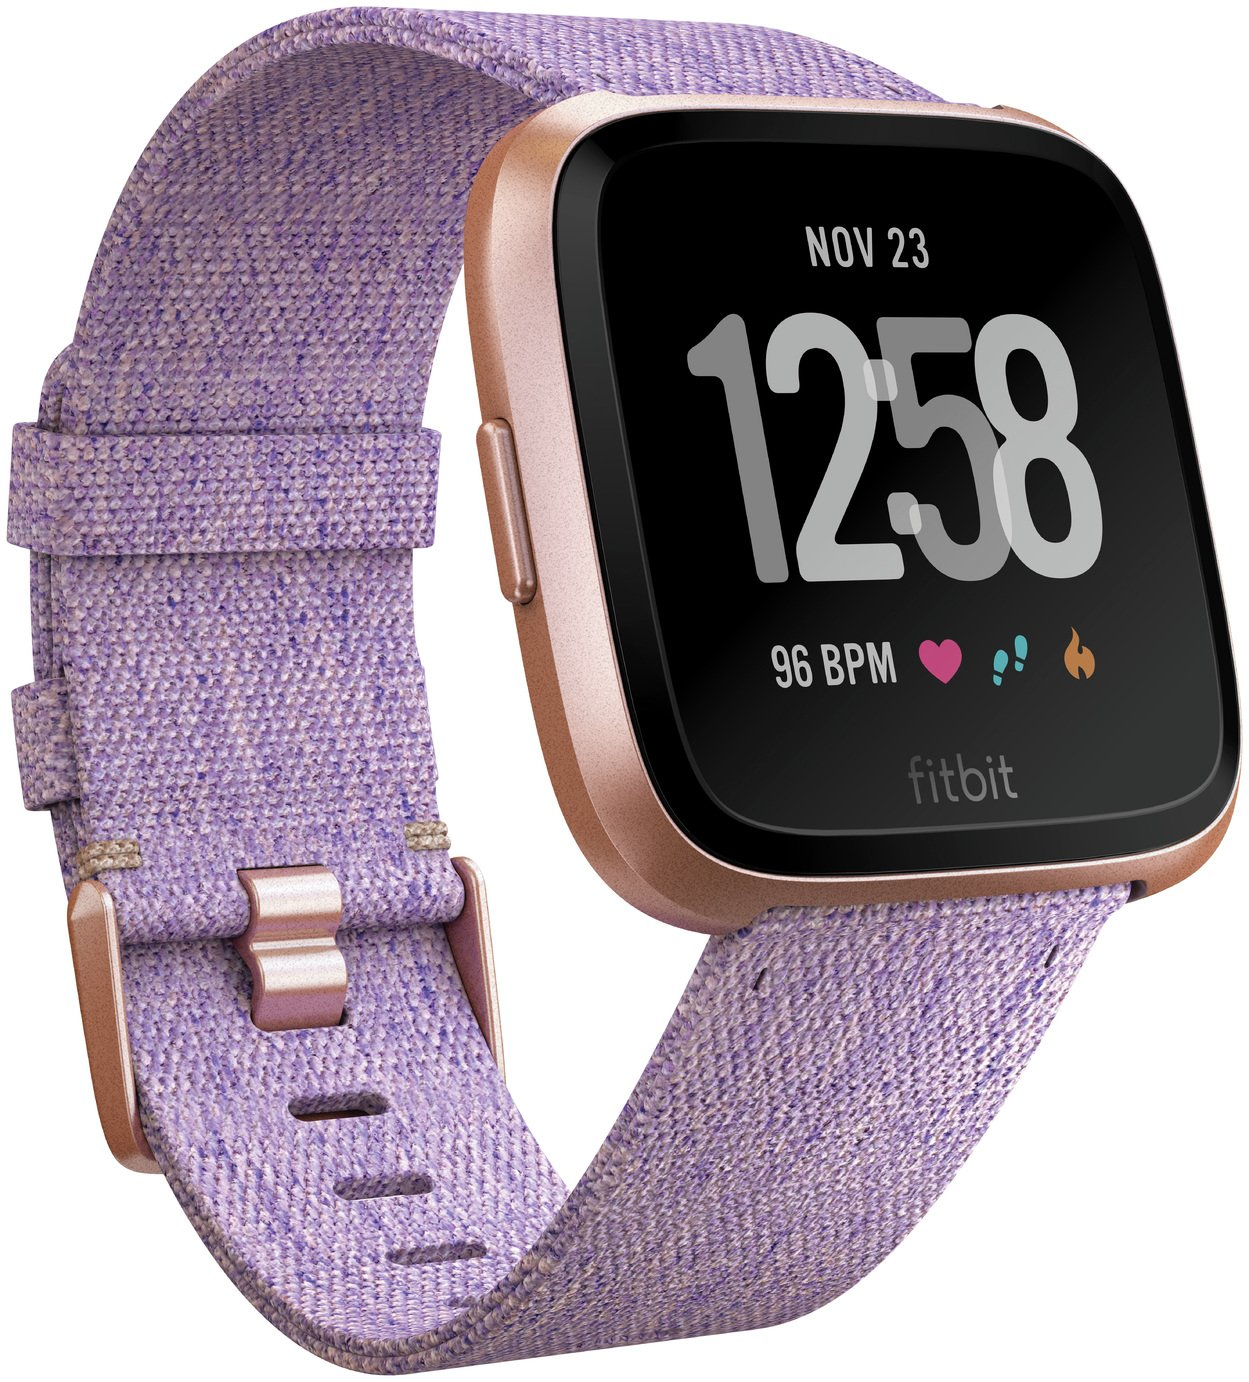 Fitbit Versa Special Edition Smart Watch - Lavender from Fitbit